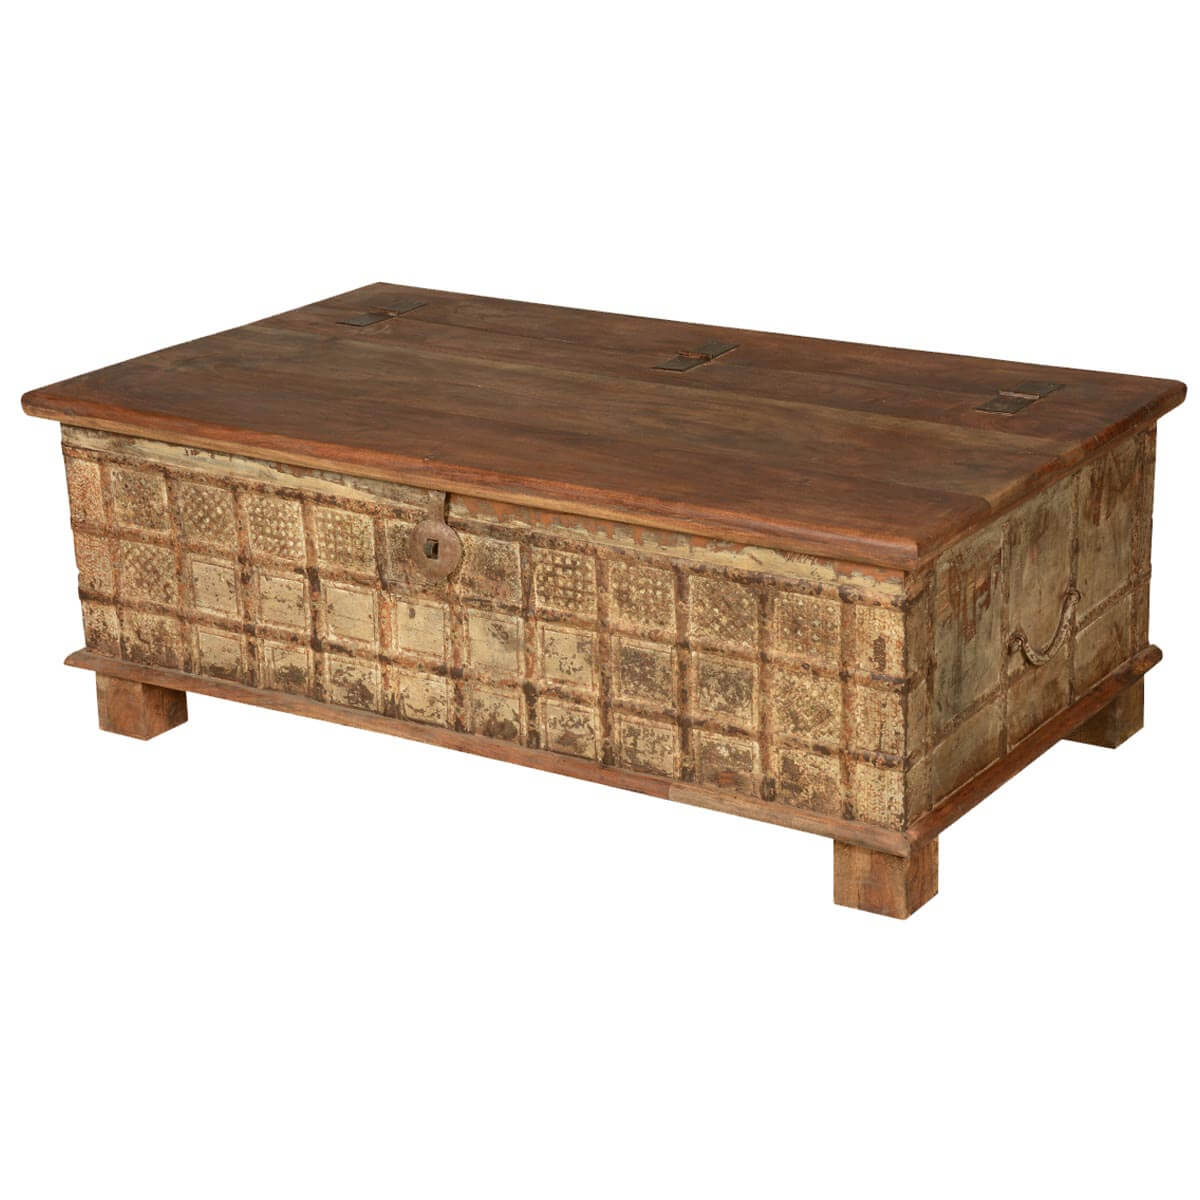 Gothic Reclaimed Wood Coffee Table Chest